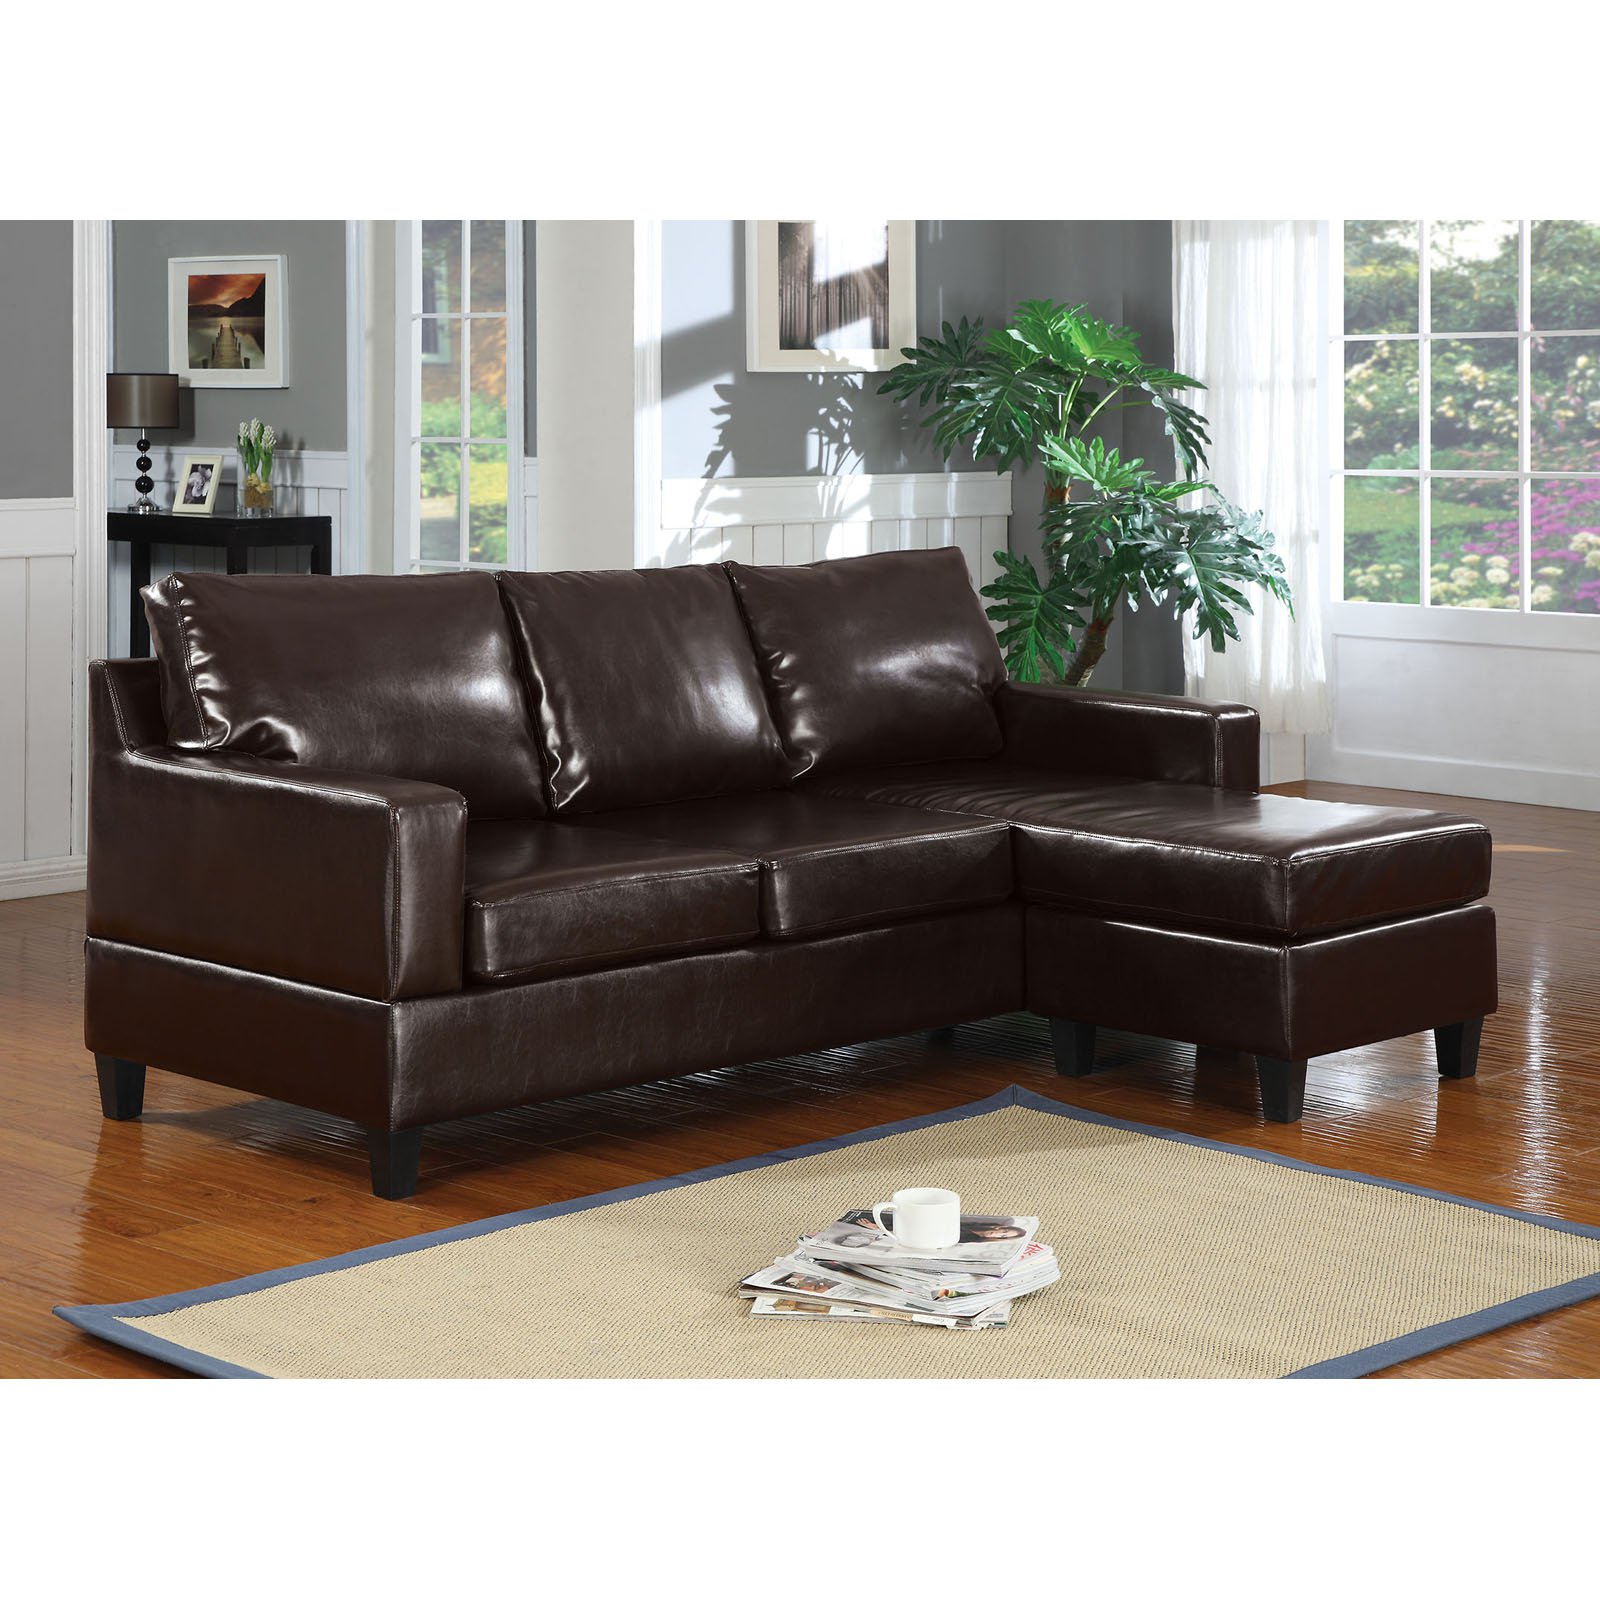 acme furniture vogue leather sectional sofa